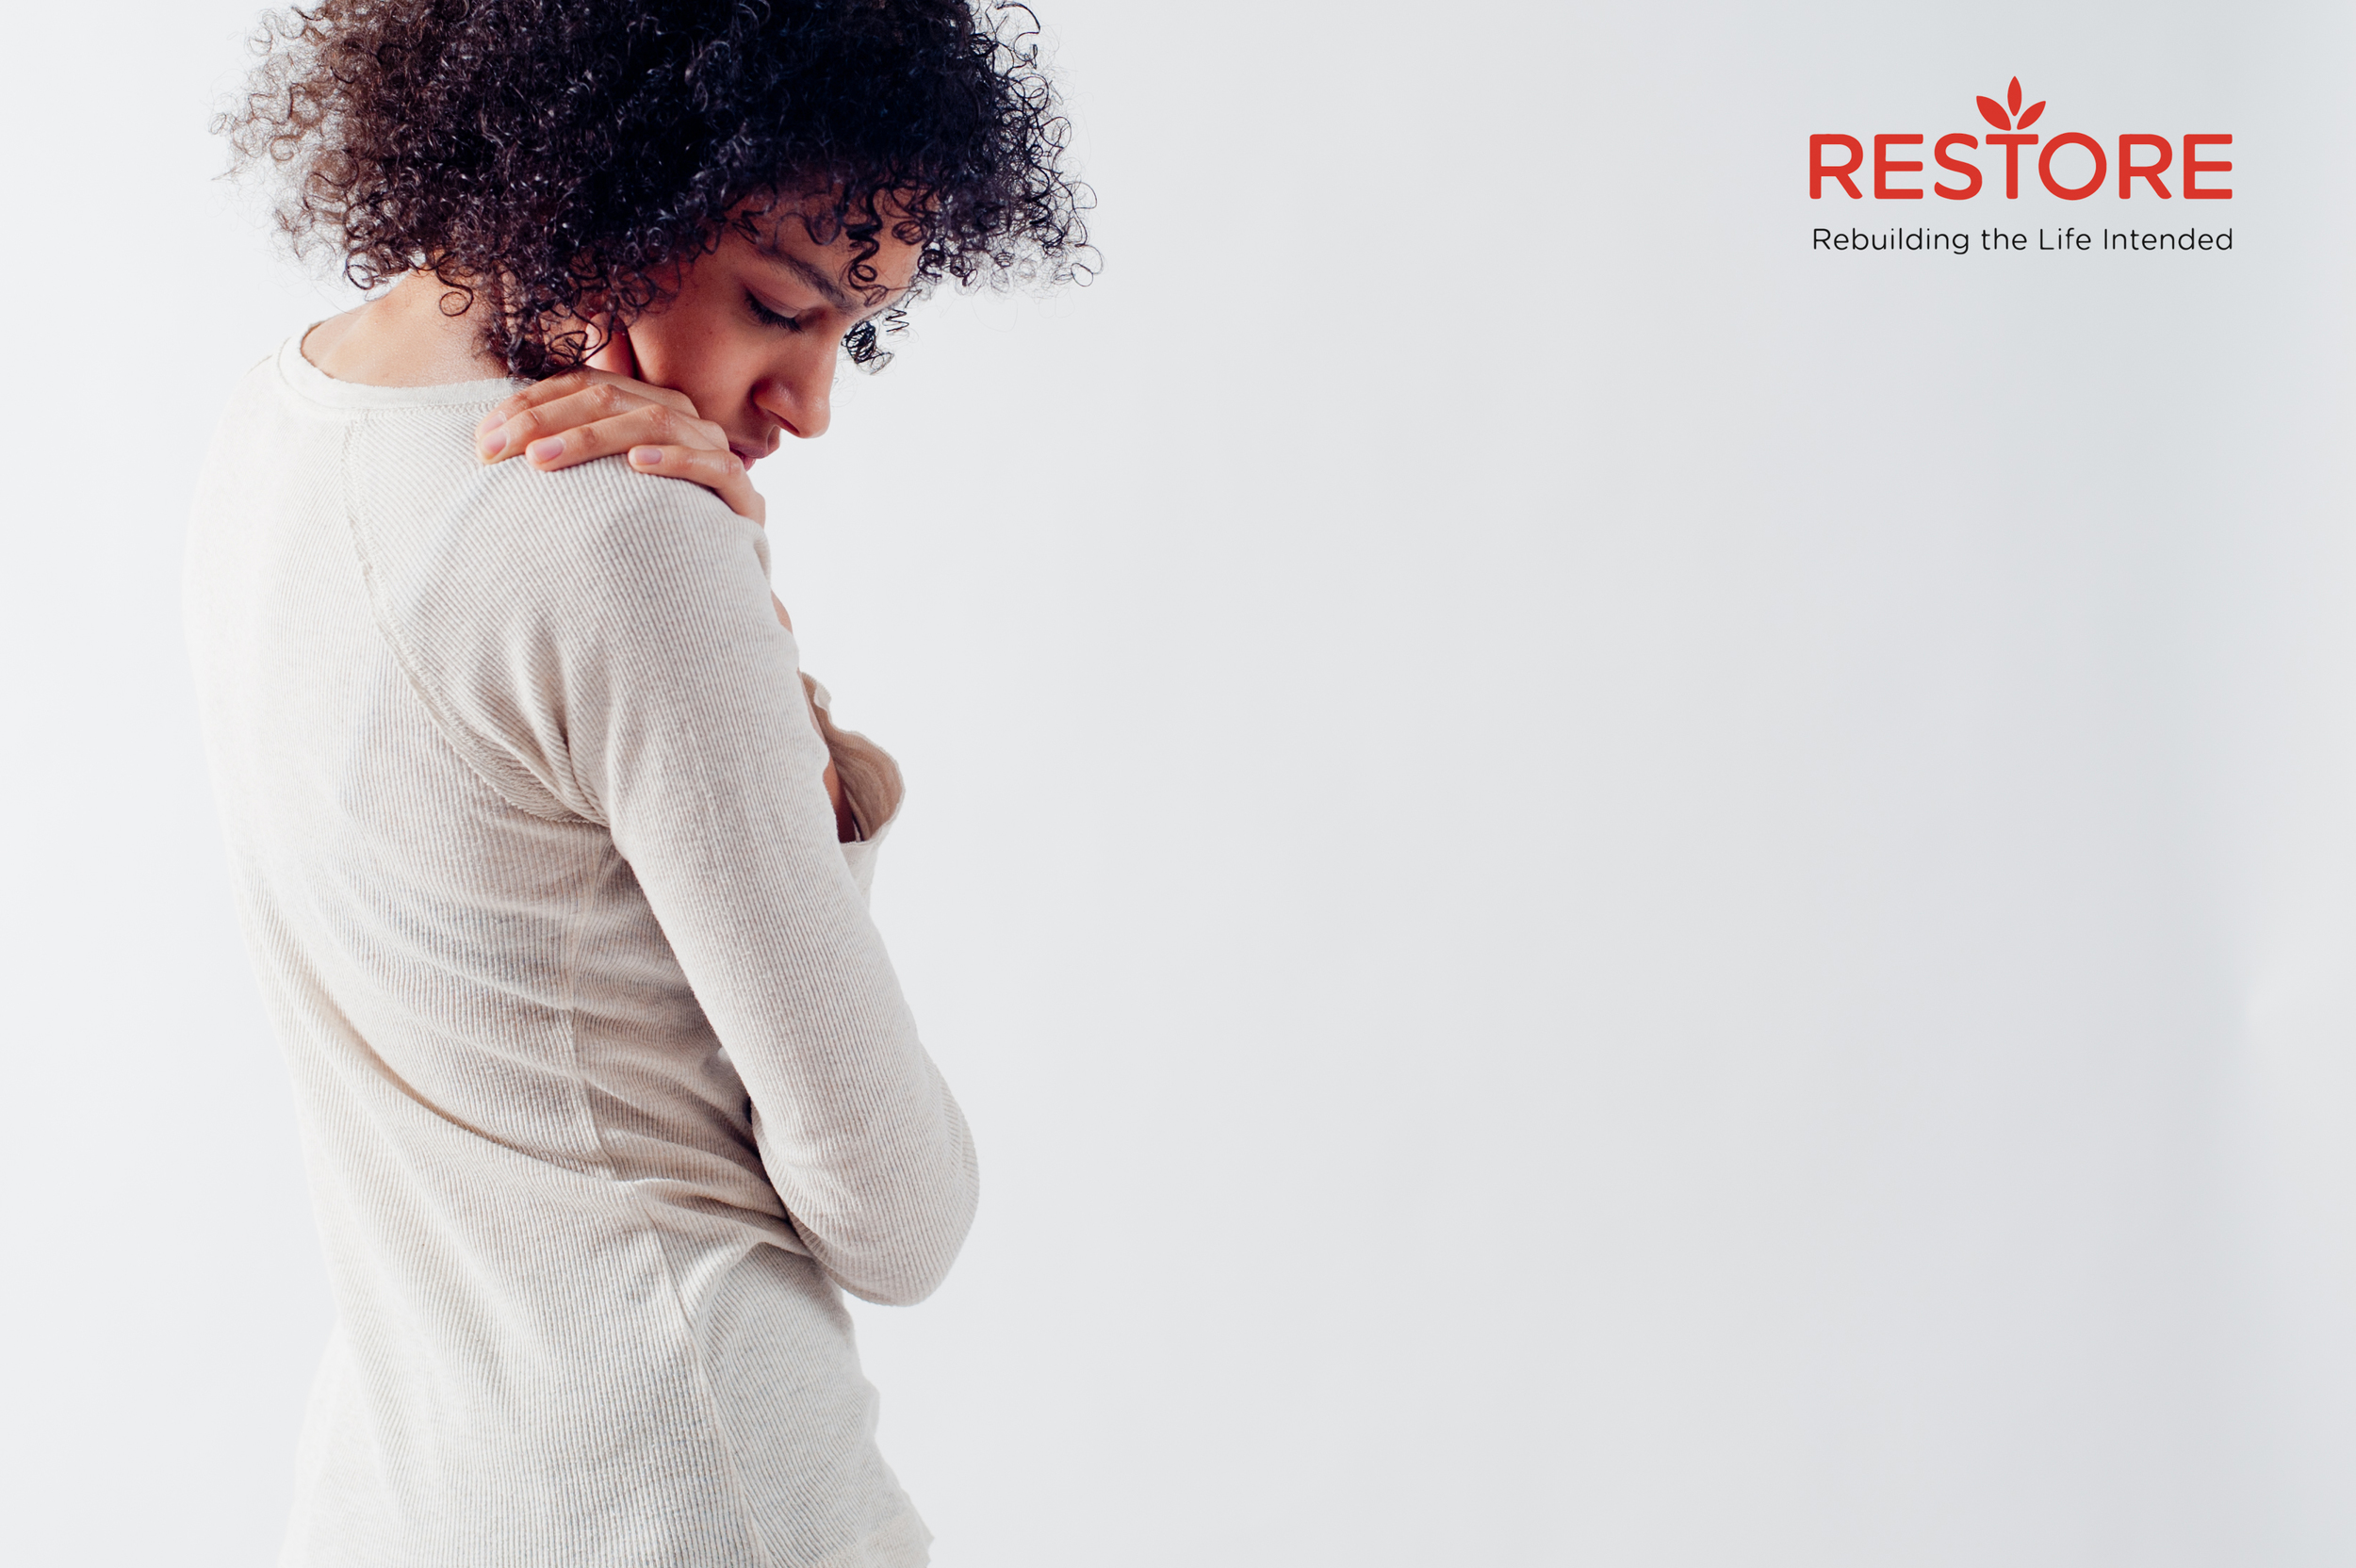 During a cold November,I set out to produce a series of images for Restore NYC, who seek to tackle an invisible epidemic: modern day slavery in the form of sex trafficking. Women abused in this manner are used as services, making them nonpersons in a world that turns a blind eye to their humanity.  The images feature actors commissioned implicitly to visualize the issue, the hope, and the work of restoring freedom, safety, and a future for survivors.  Restore NYC is a nonprofit dedicated to supporting foreign-born women of sex trafficking and rebuilding their identities by providing long-term, holistic aftercare services.   www.restorenyc.org